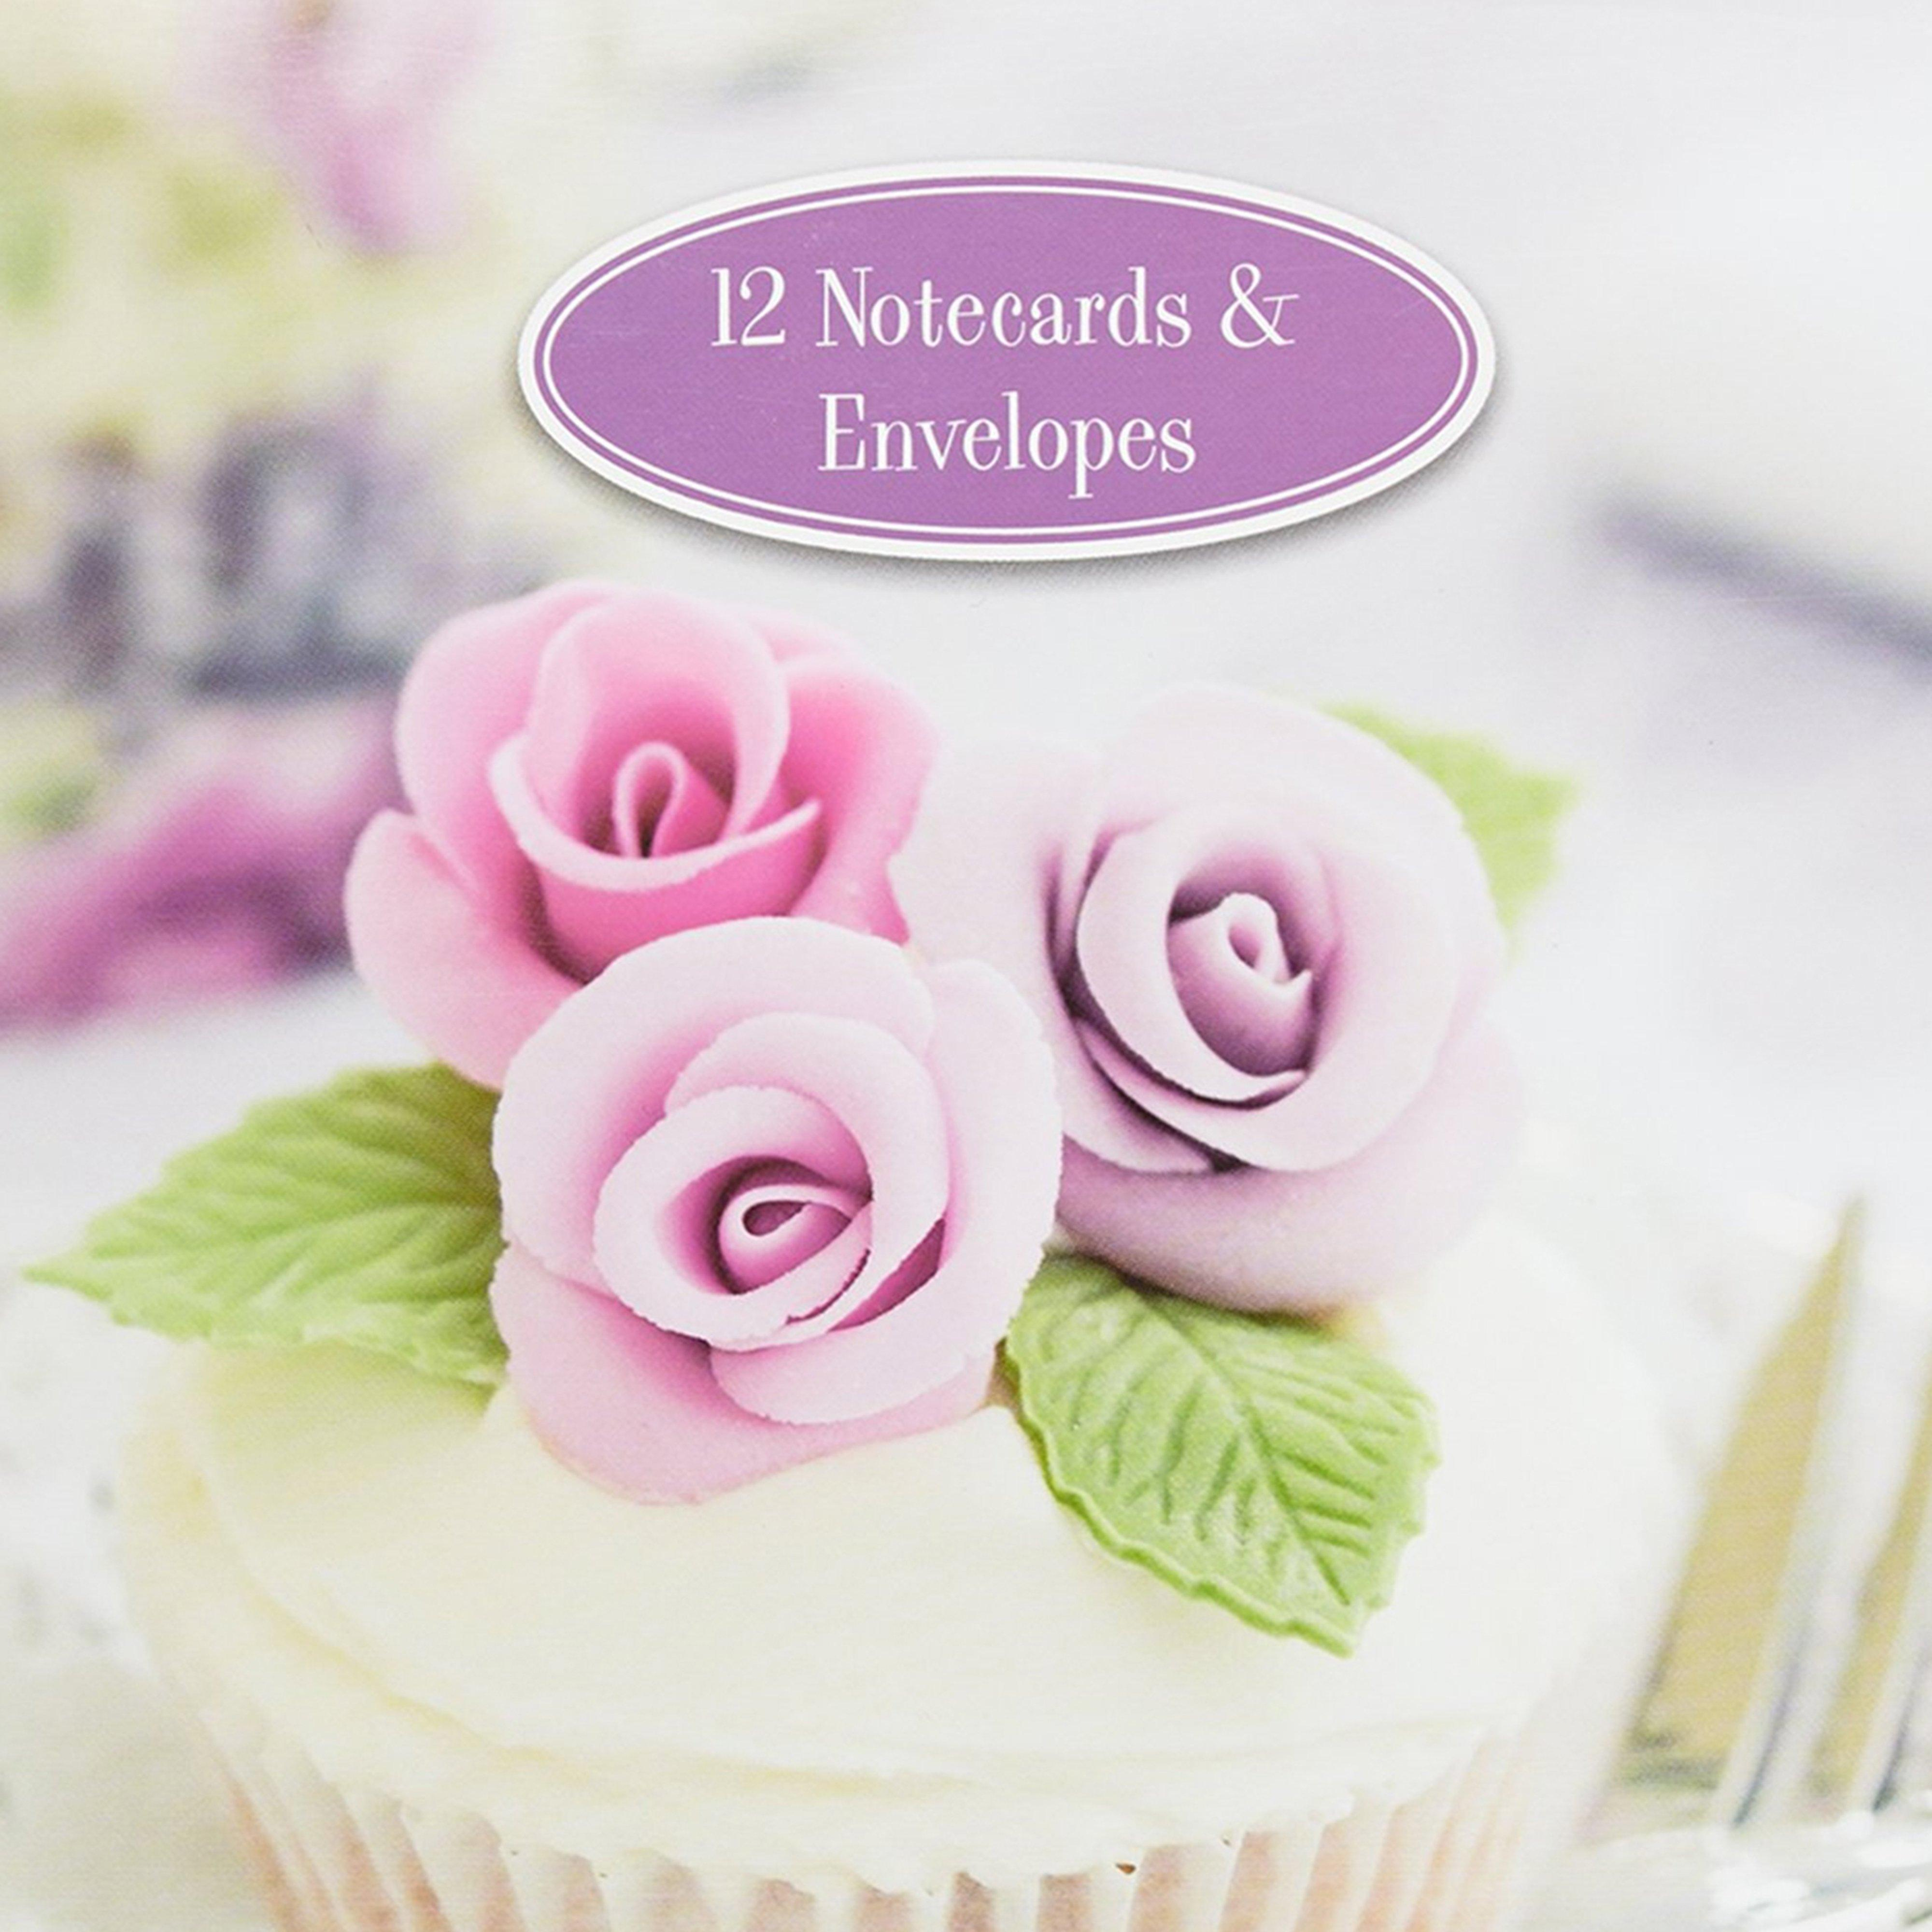 Image of Gifted Cupcake Notepad and Envelope